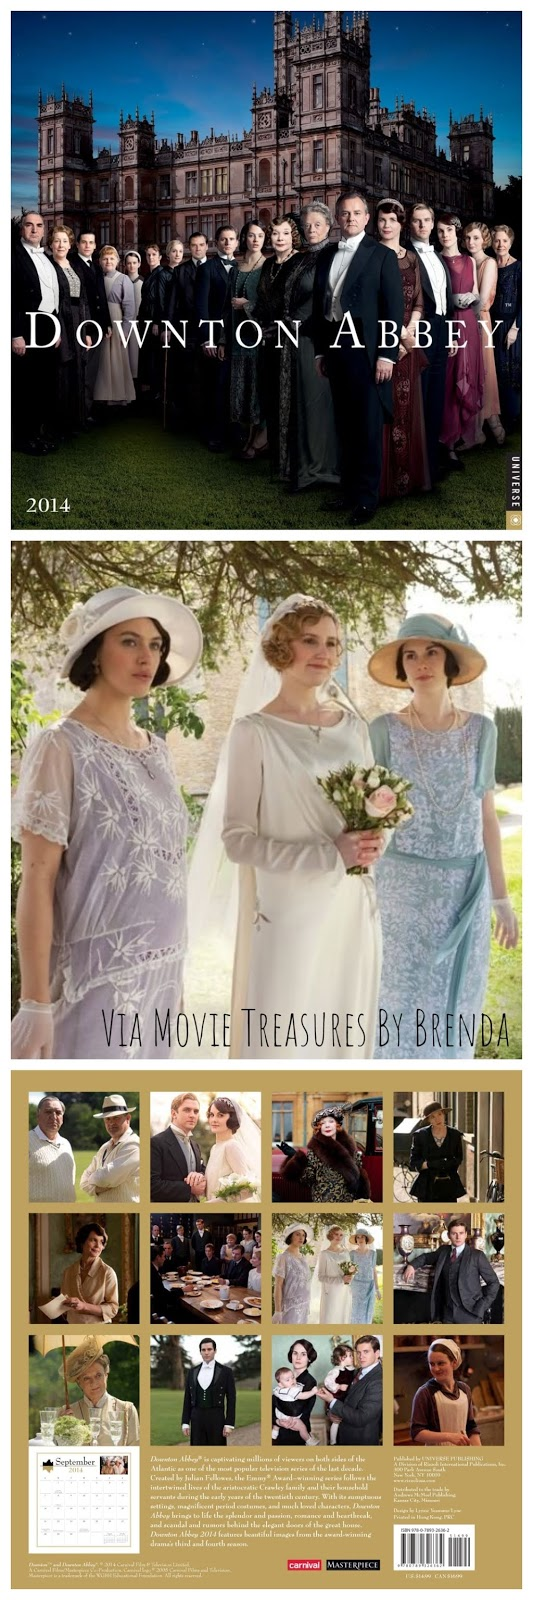 Downton Abbey 2014 Calendar from Movie Treasures By Brenda